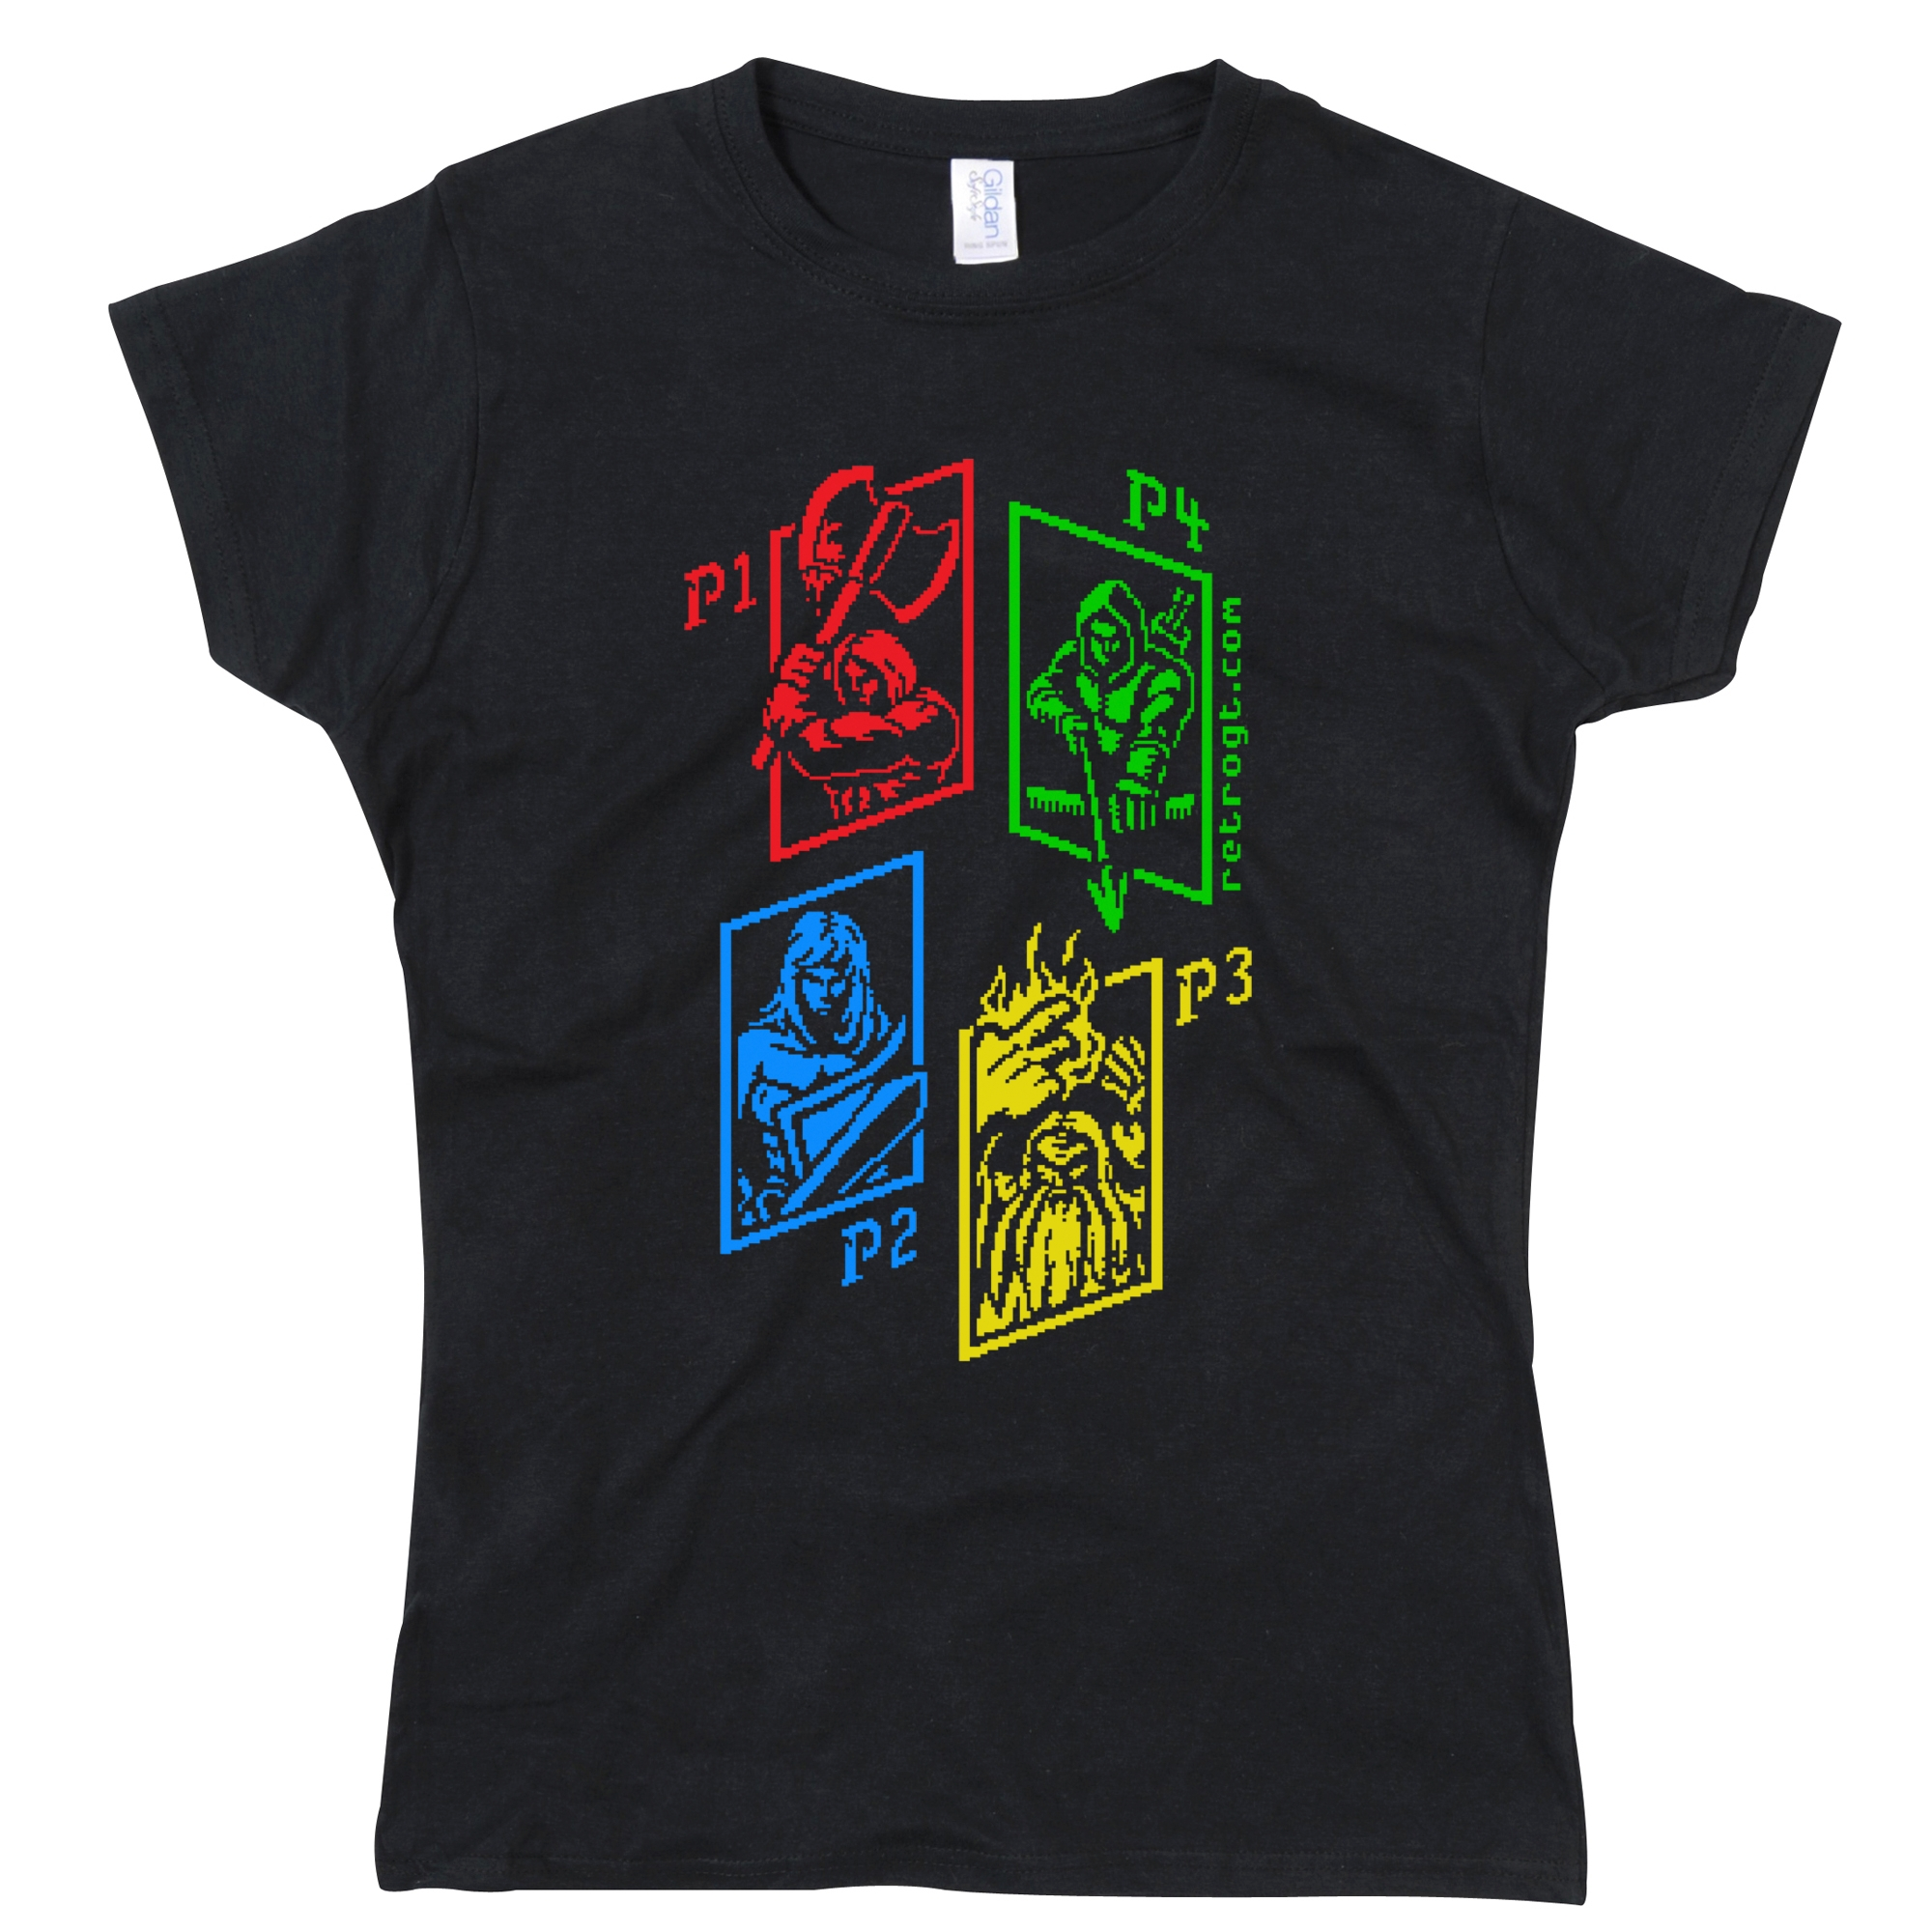 Photograph: Dungeon Crawler Girls T-Shirt